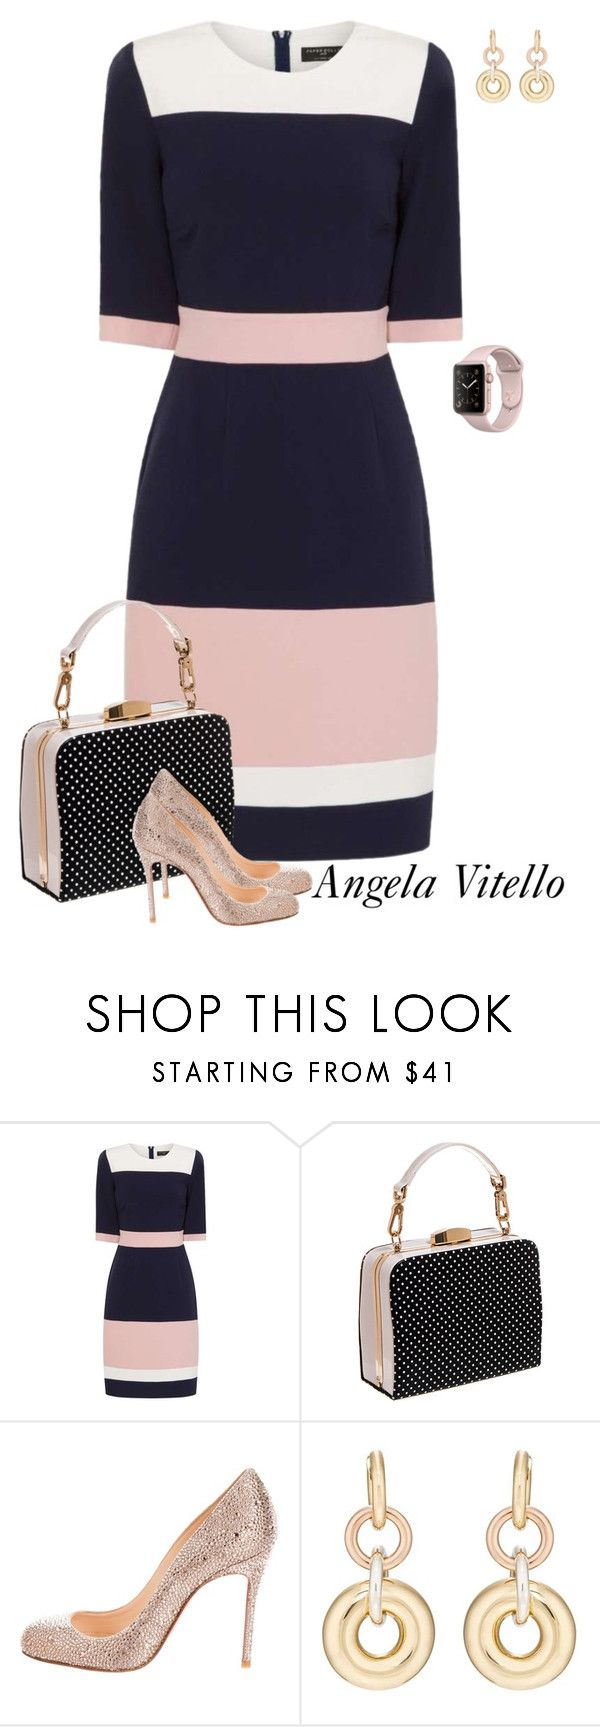 """Untitled #1019"" by angela-vitello on Polyvore featuring Paper Dolls, Christian Louboutin and SPINELLI KILCOLLIN"